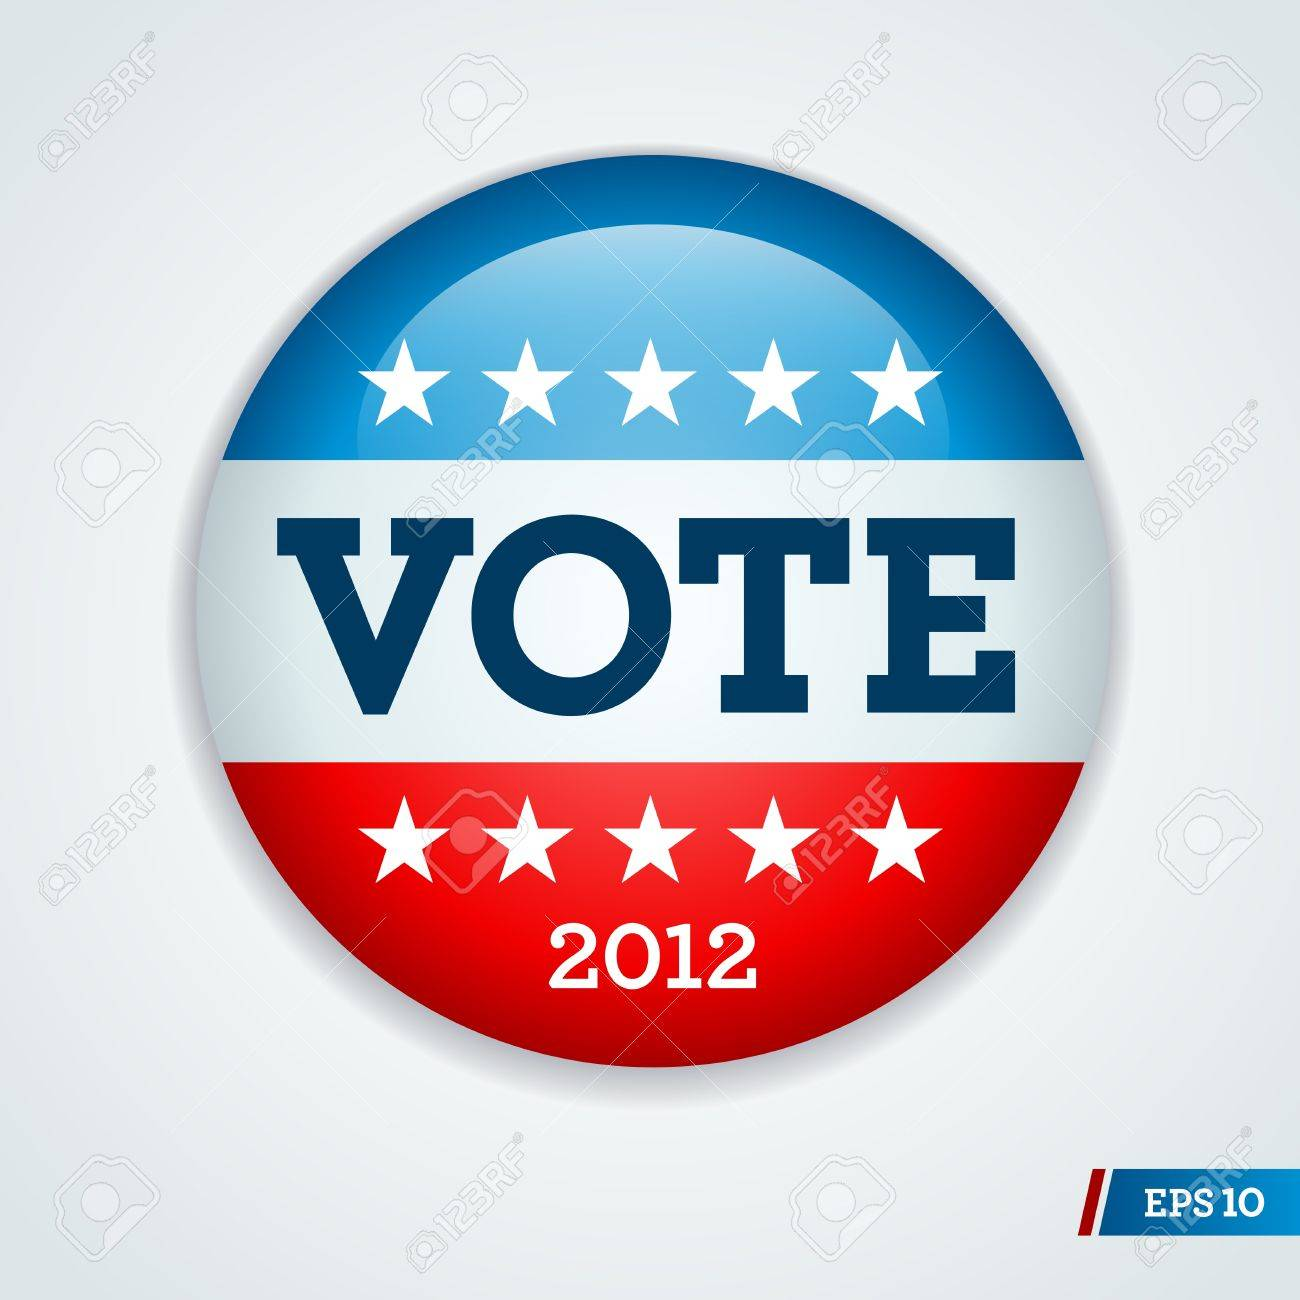 Vote election campaign badge button for 2012 Stock Vector - 11870039